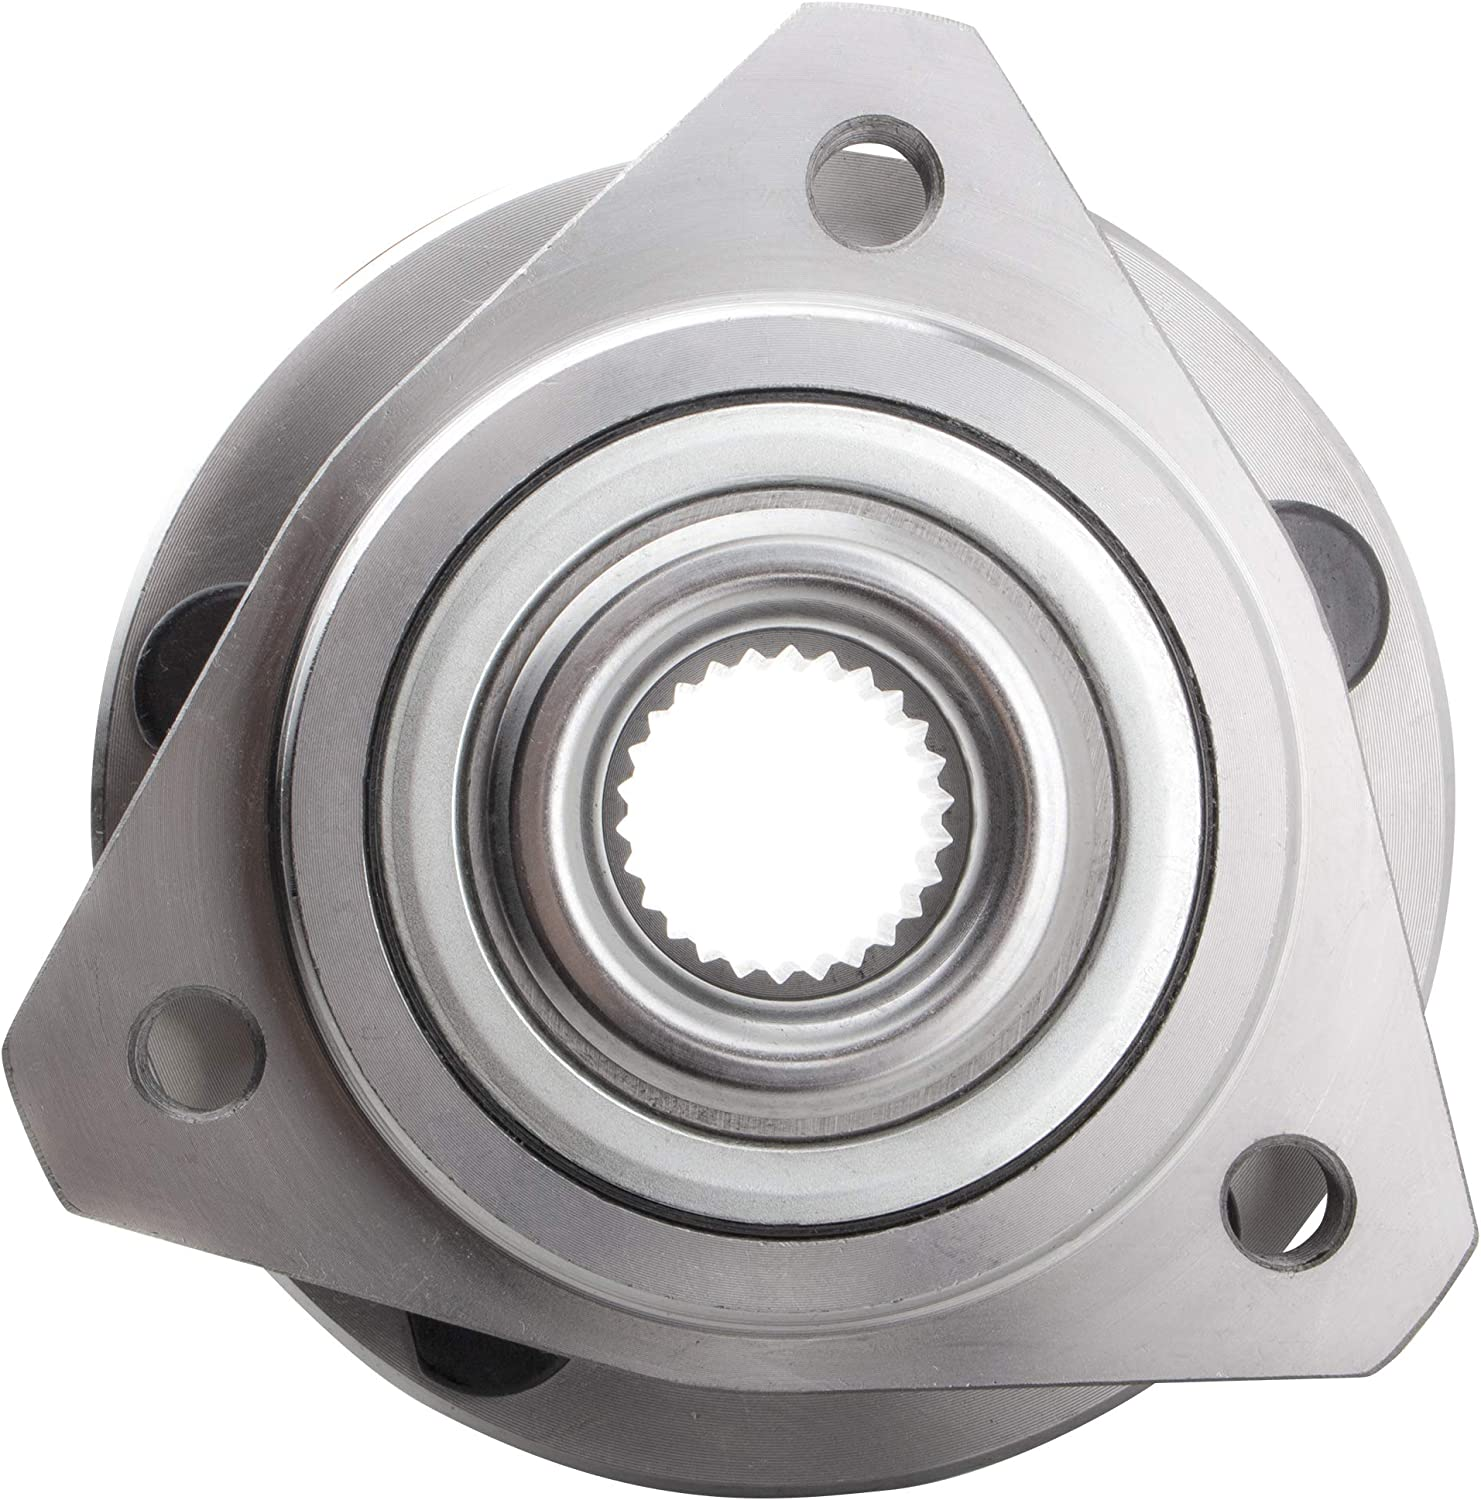 BOXI Front Wheel Hub and Bearing Assembly for 1995-2000 Chrysl-er Cirrus /1996-2006 Chrysl-er Sebring 06 Dodge Stratus /1996-2000 Plymouth Breeze (5 lugs wheel hubs without ABS) 513138